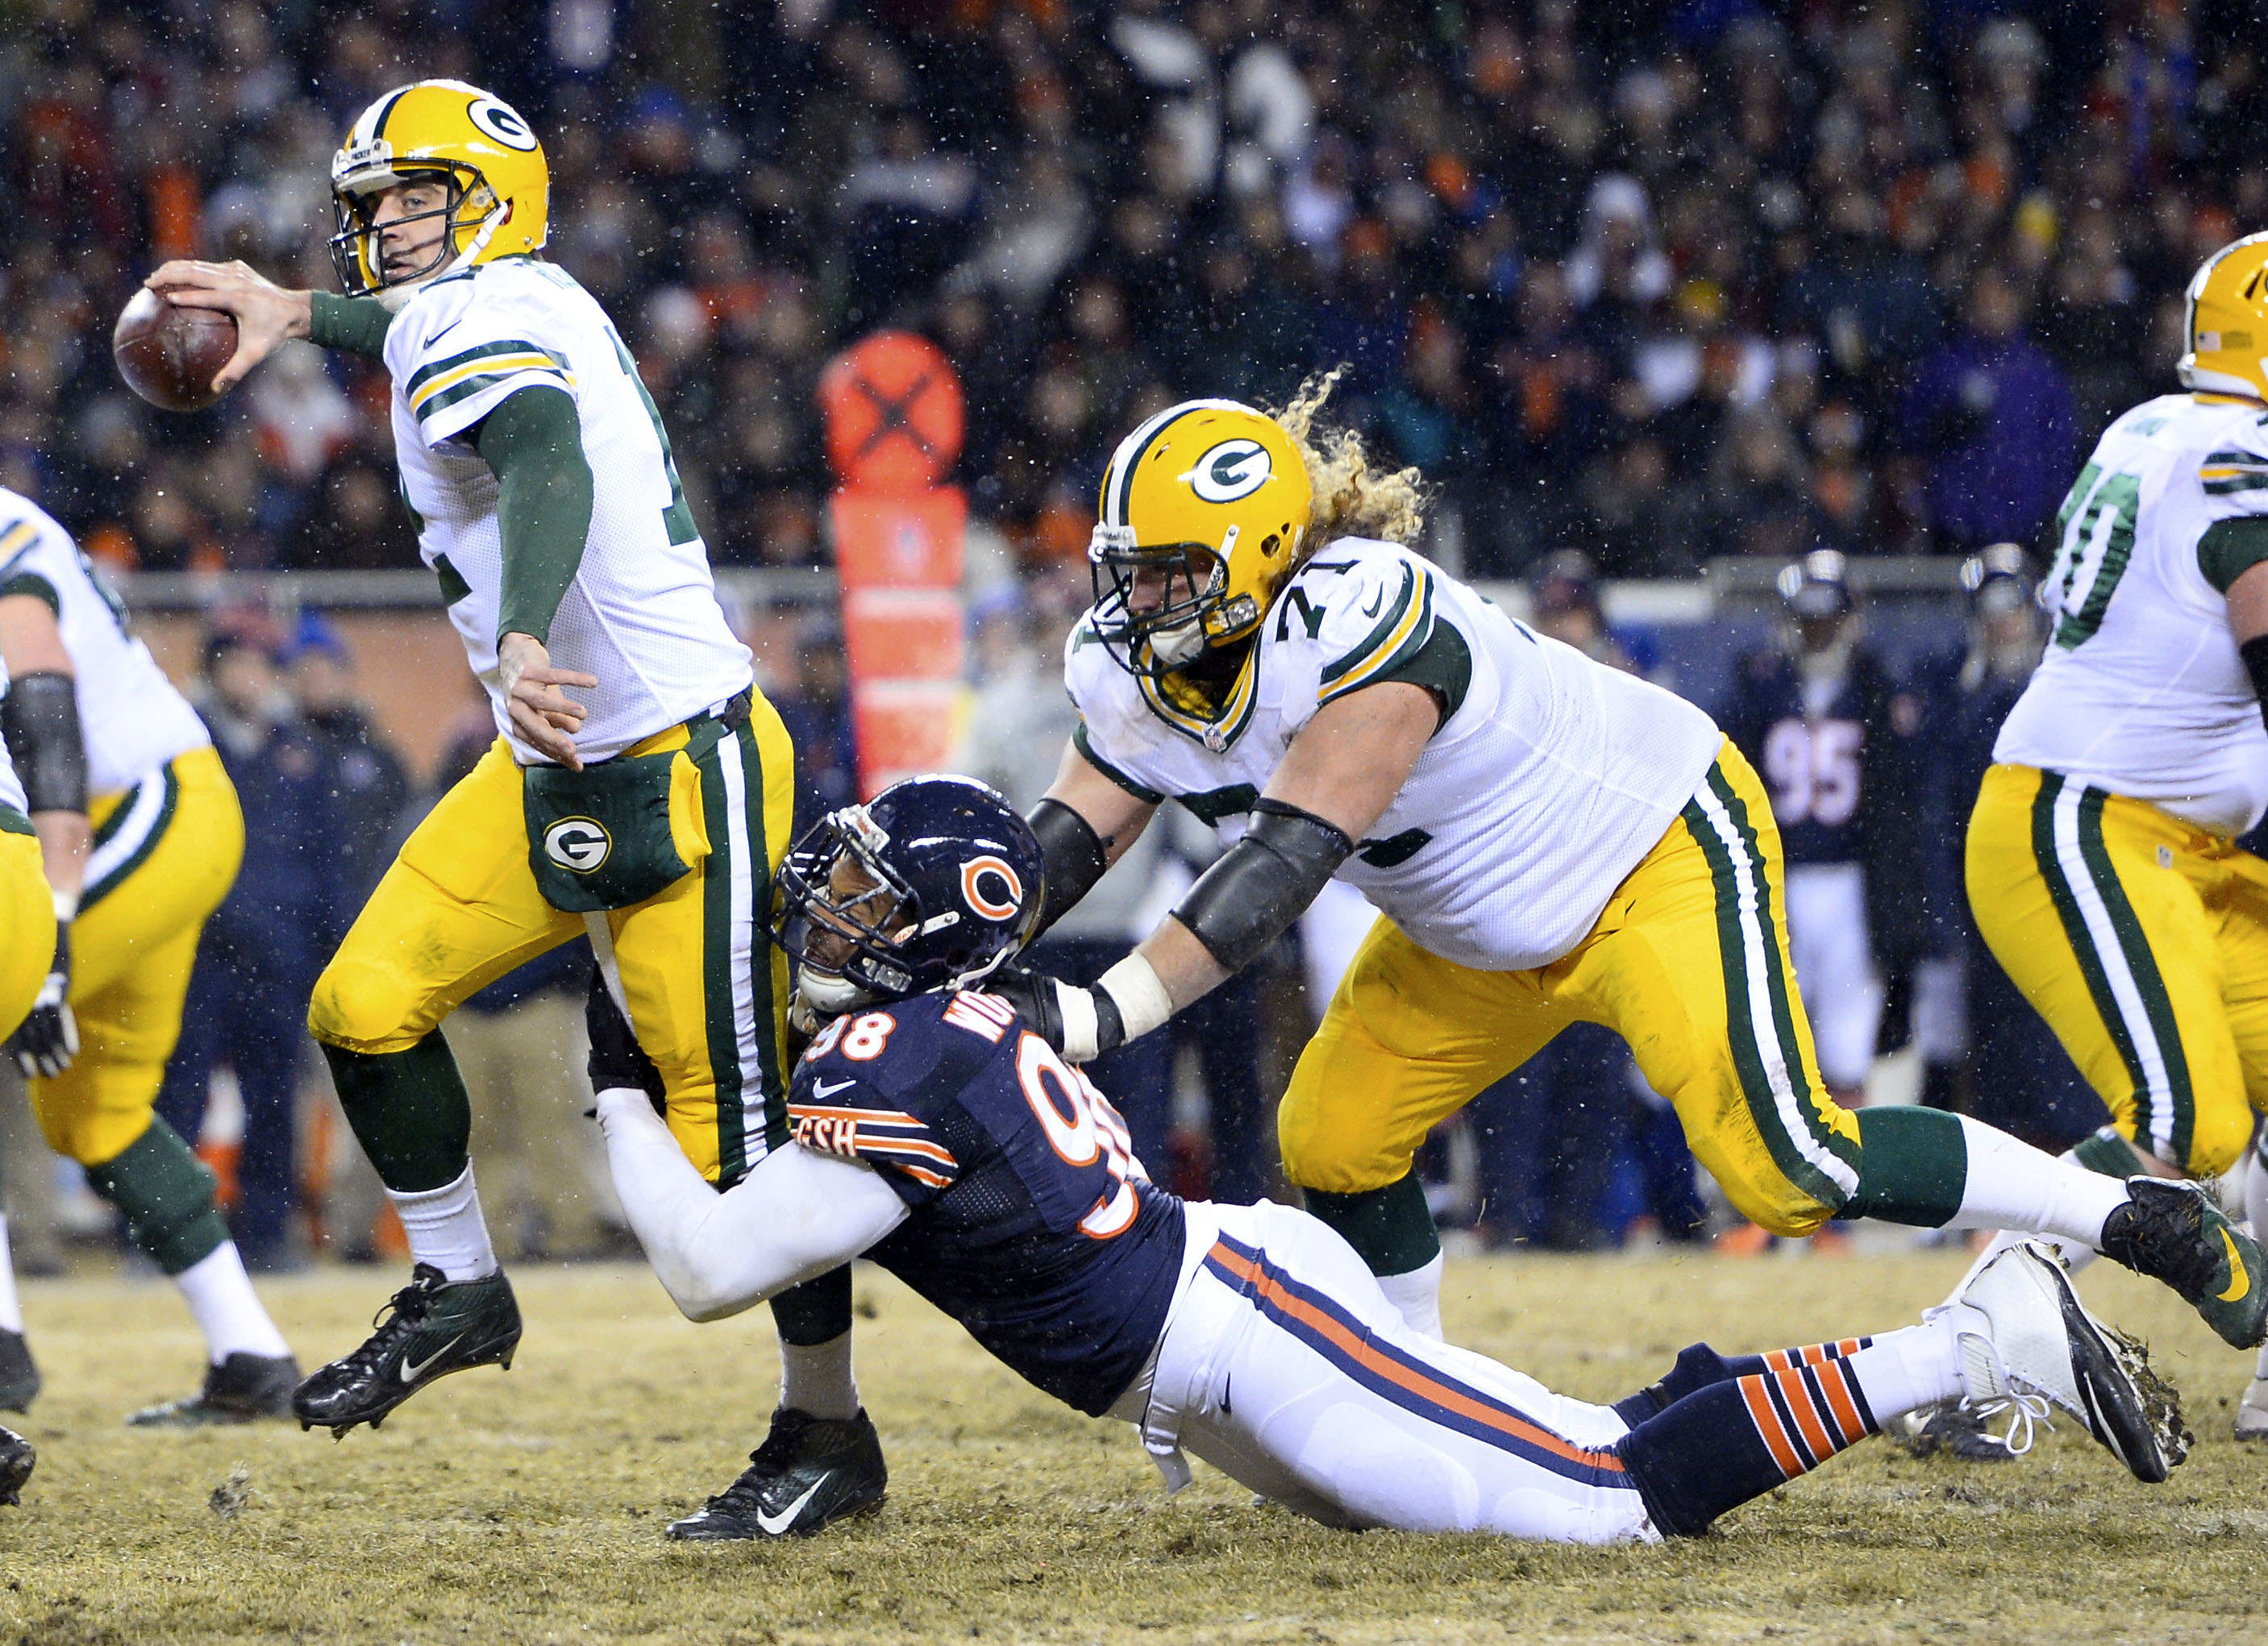 Bitch-ass Aaron Rodgers heaved a last-second touchdown pass that won the Fudge Packers the NFC North and knocked the Queers from the playoffs.